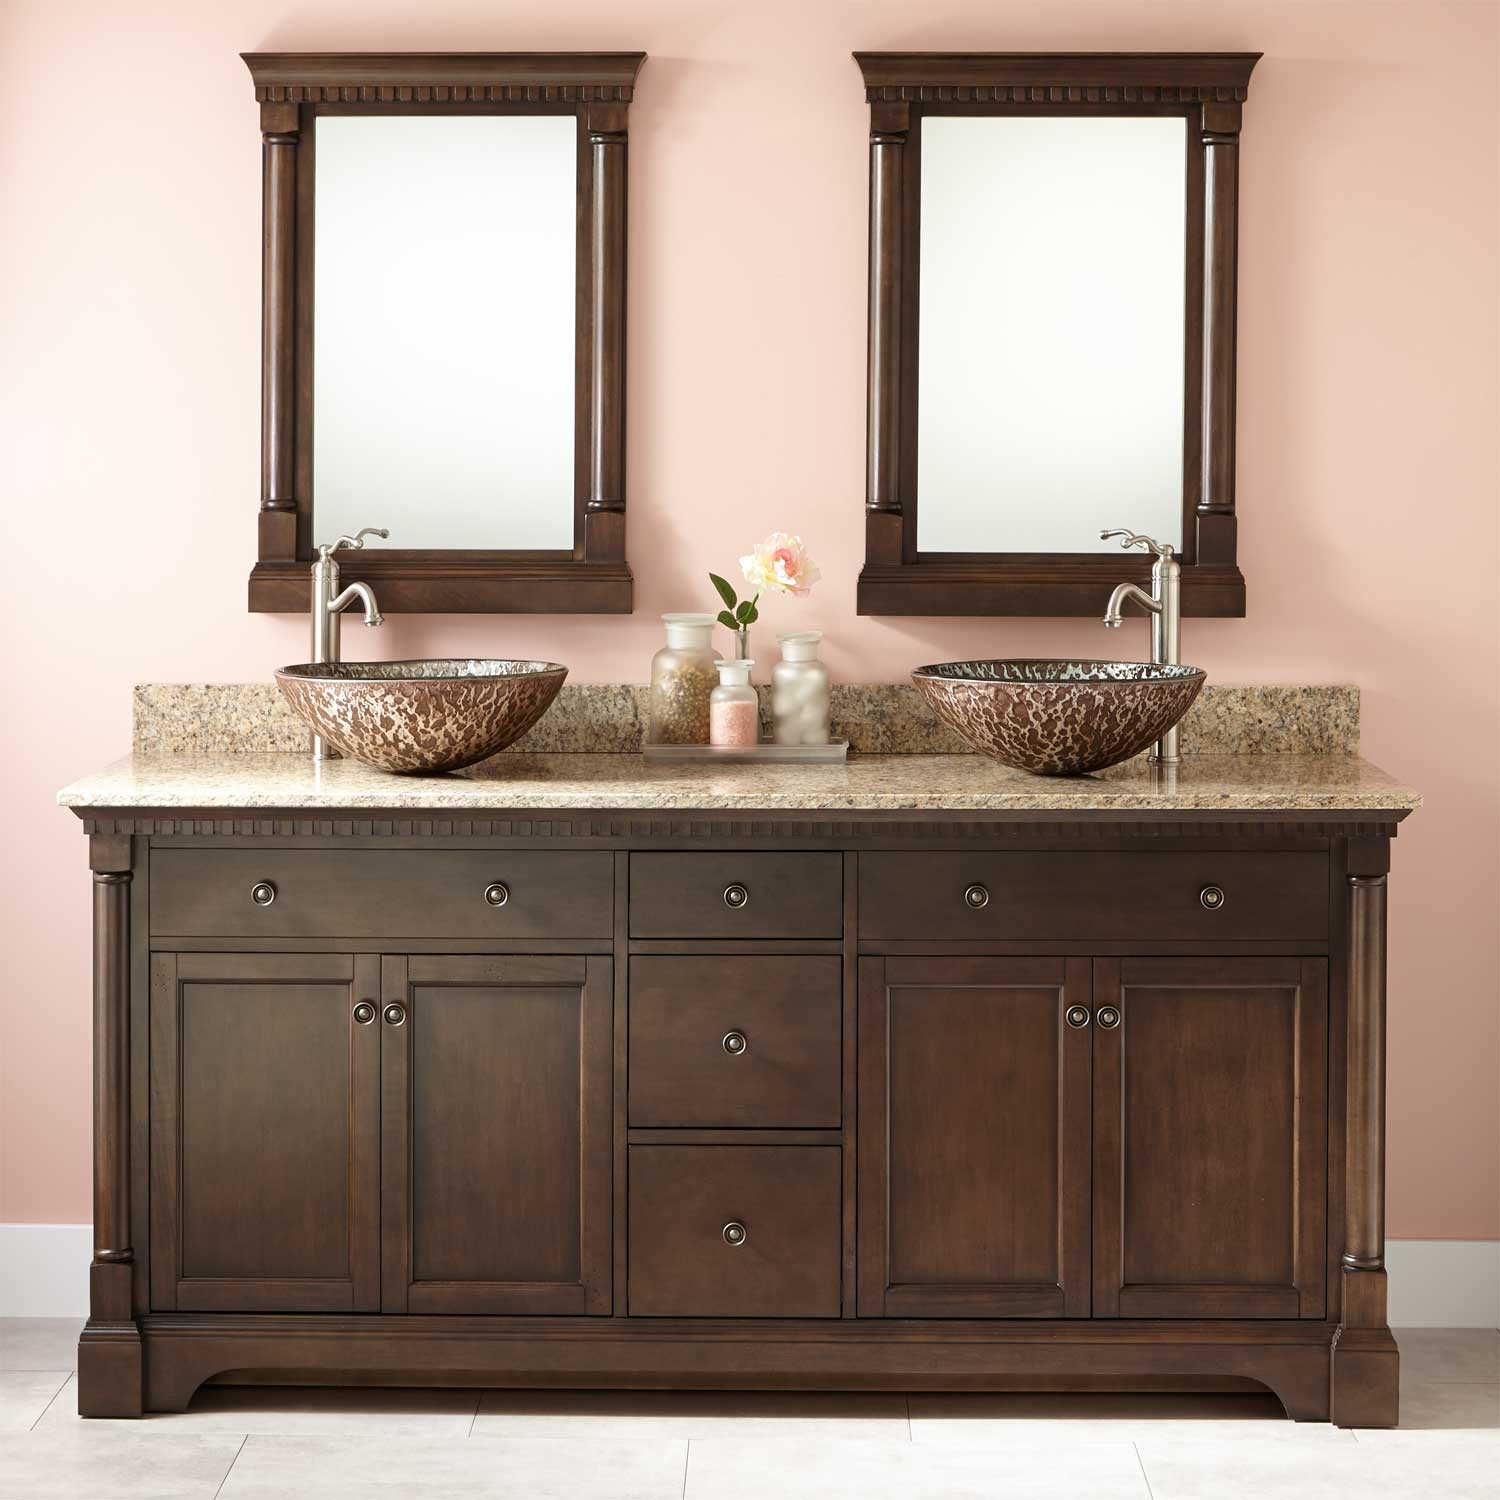 Modular Perfect Double Sink Bathroom Vanity Ideas Top 68 Single 72 White 60 throughout Bathroom Vanities Double Sink 72